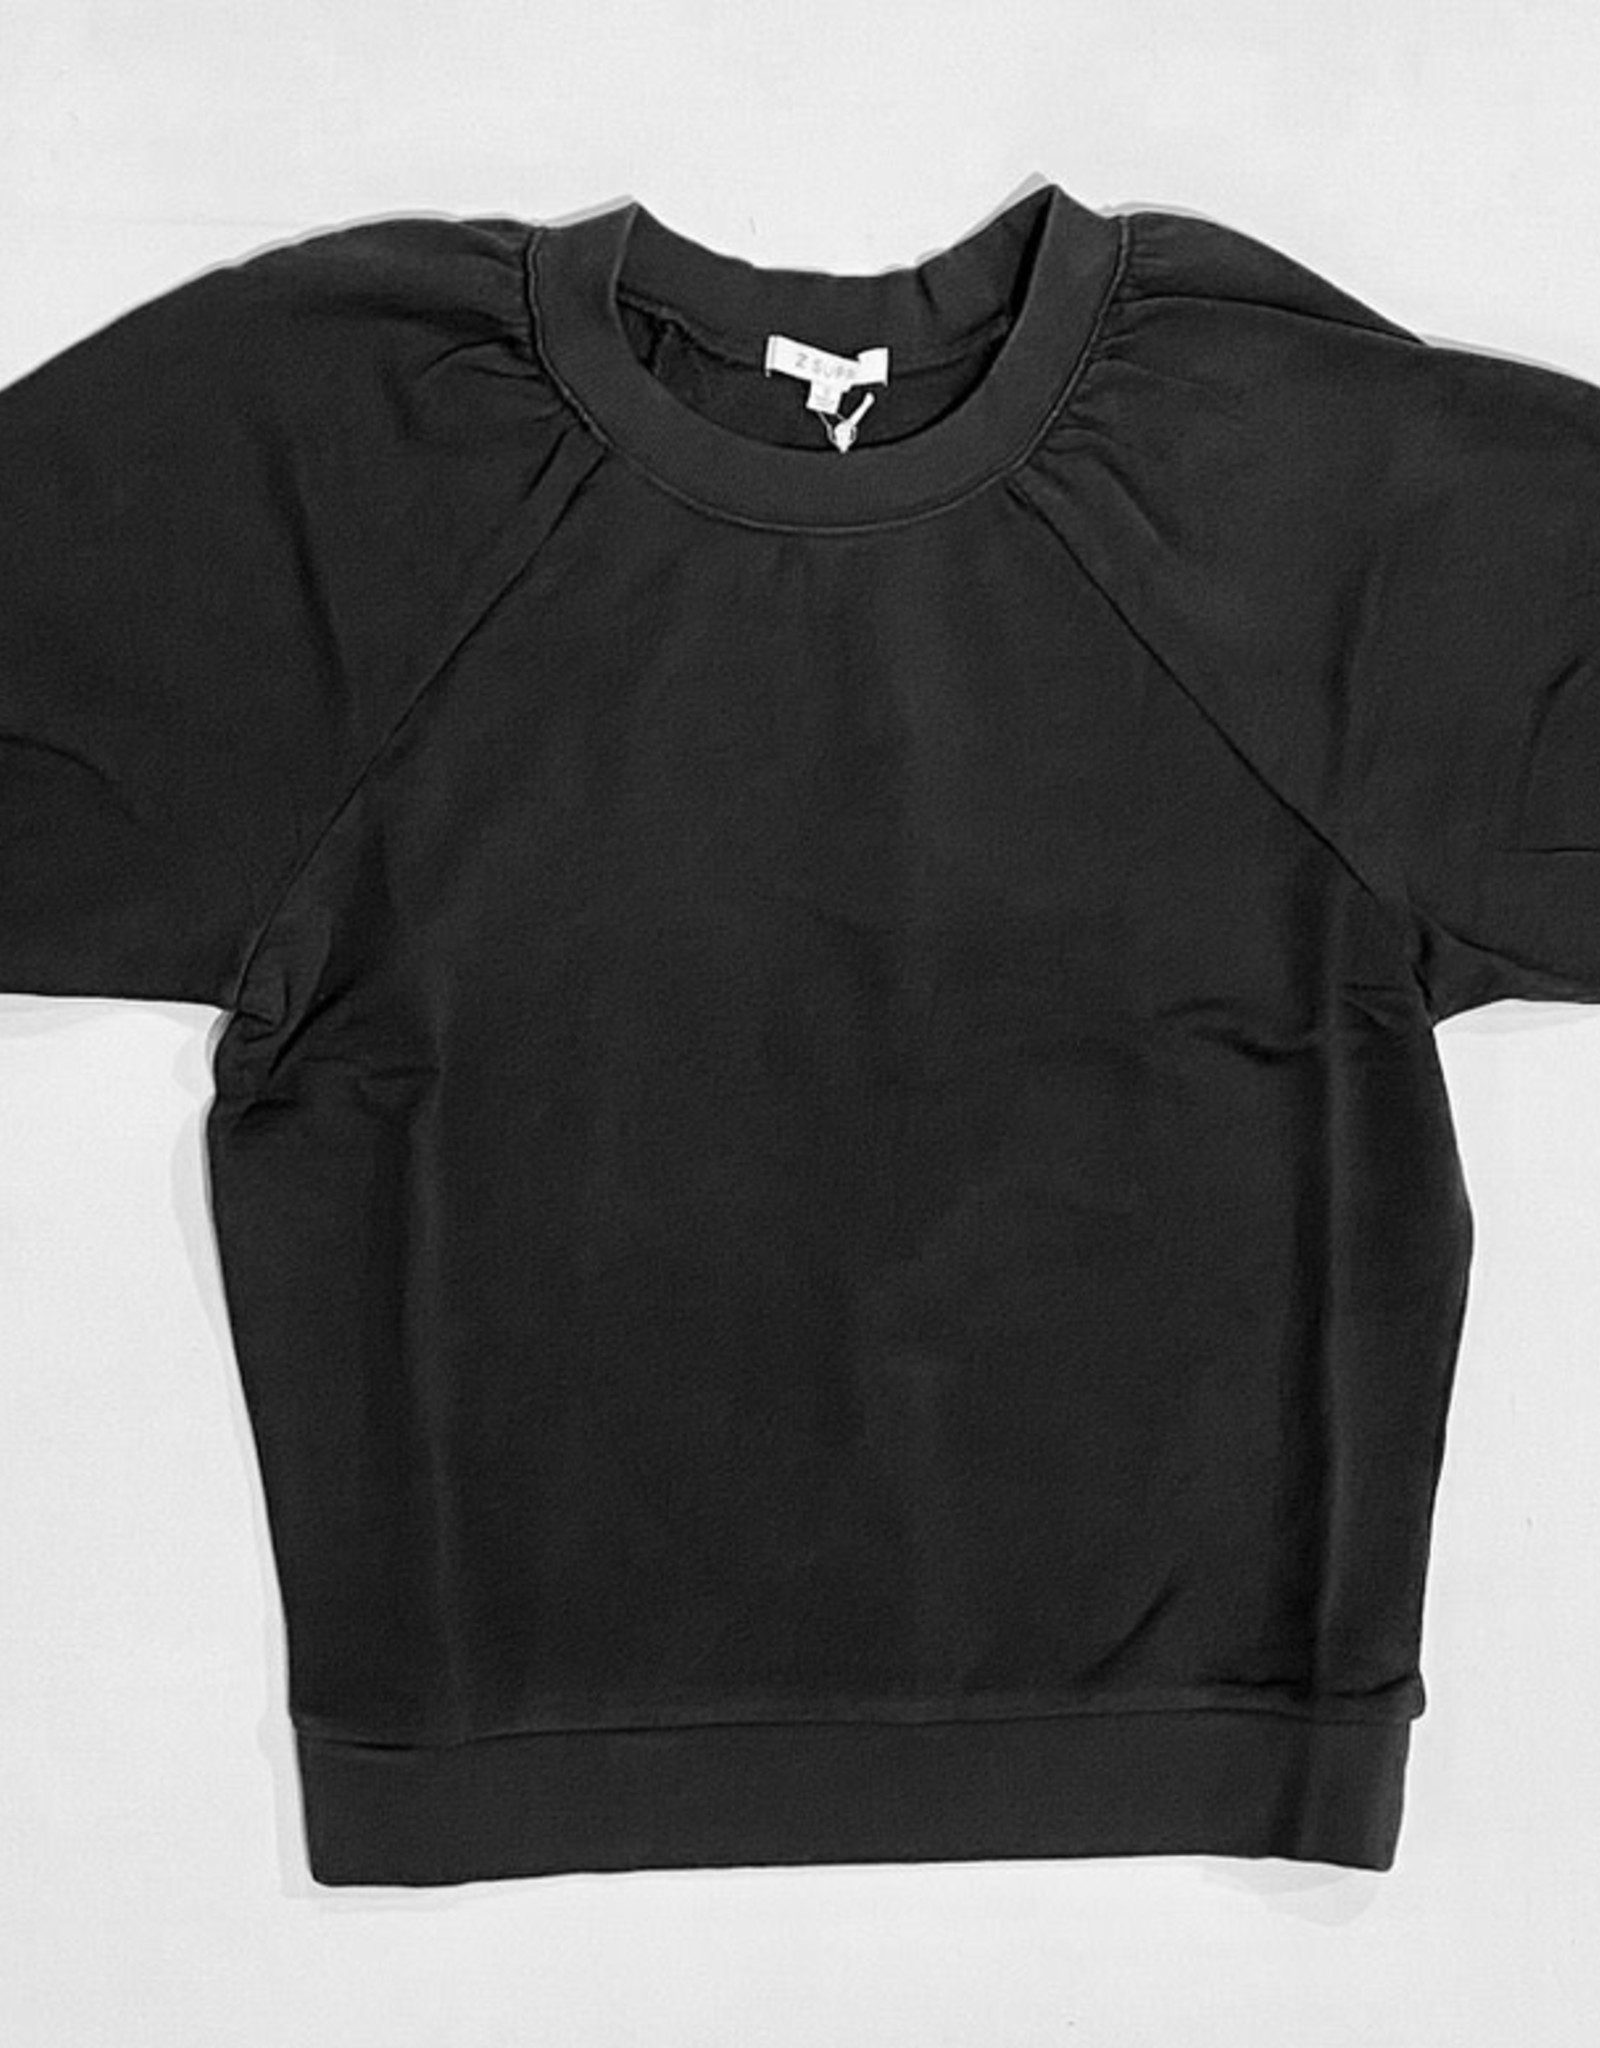 ZS Gianna Terry Tee ZT211262 Washed Black L